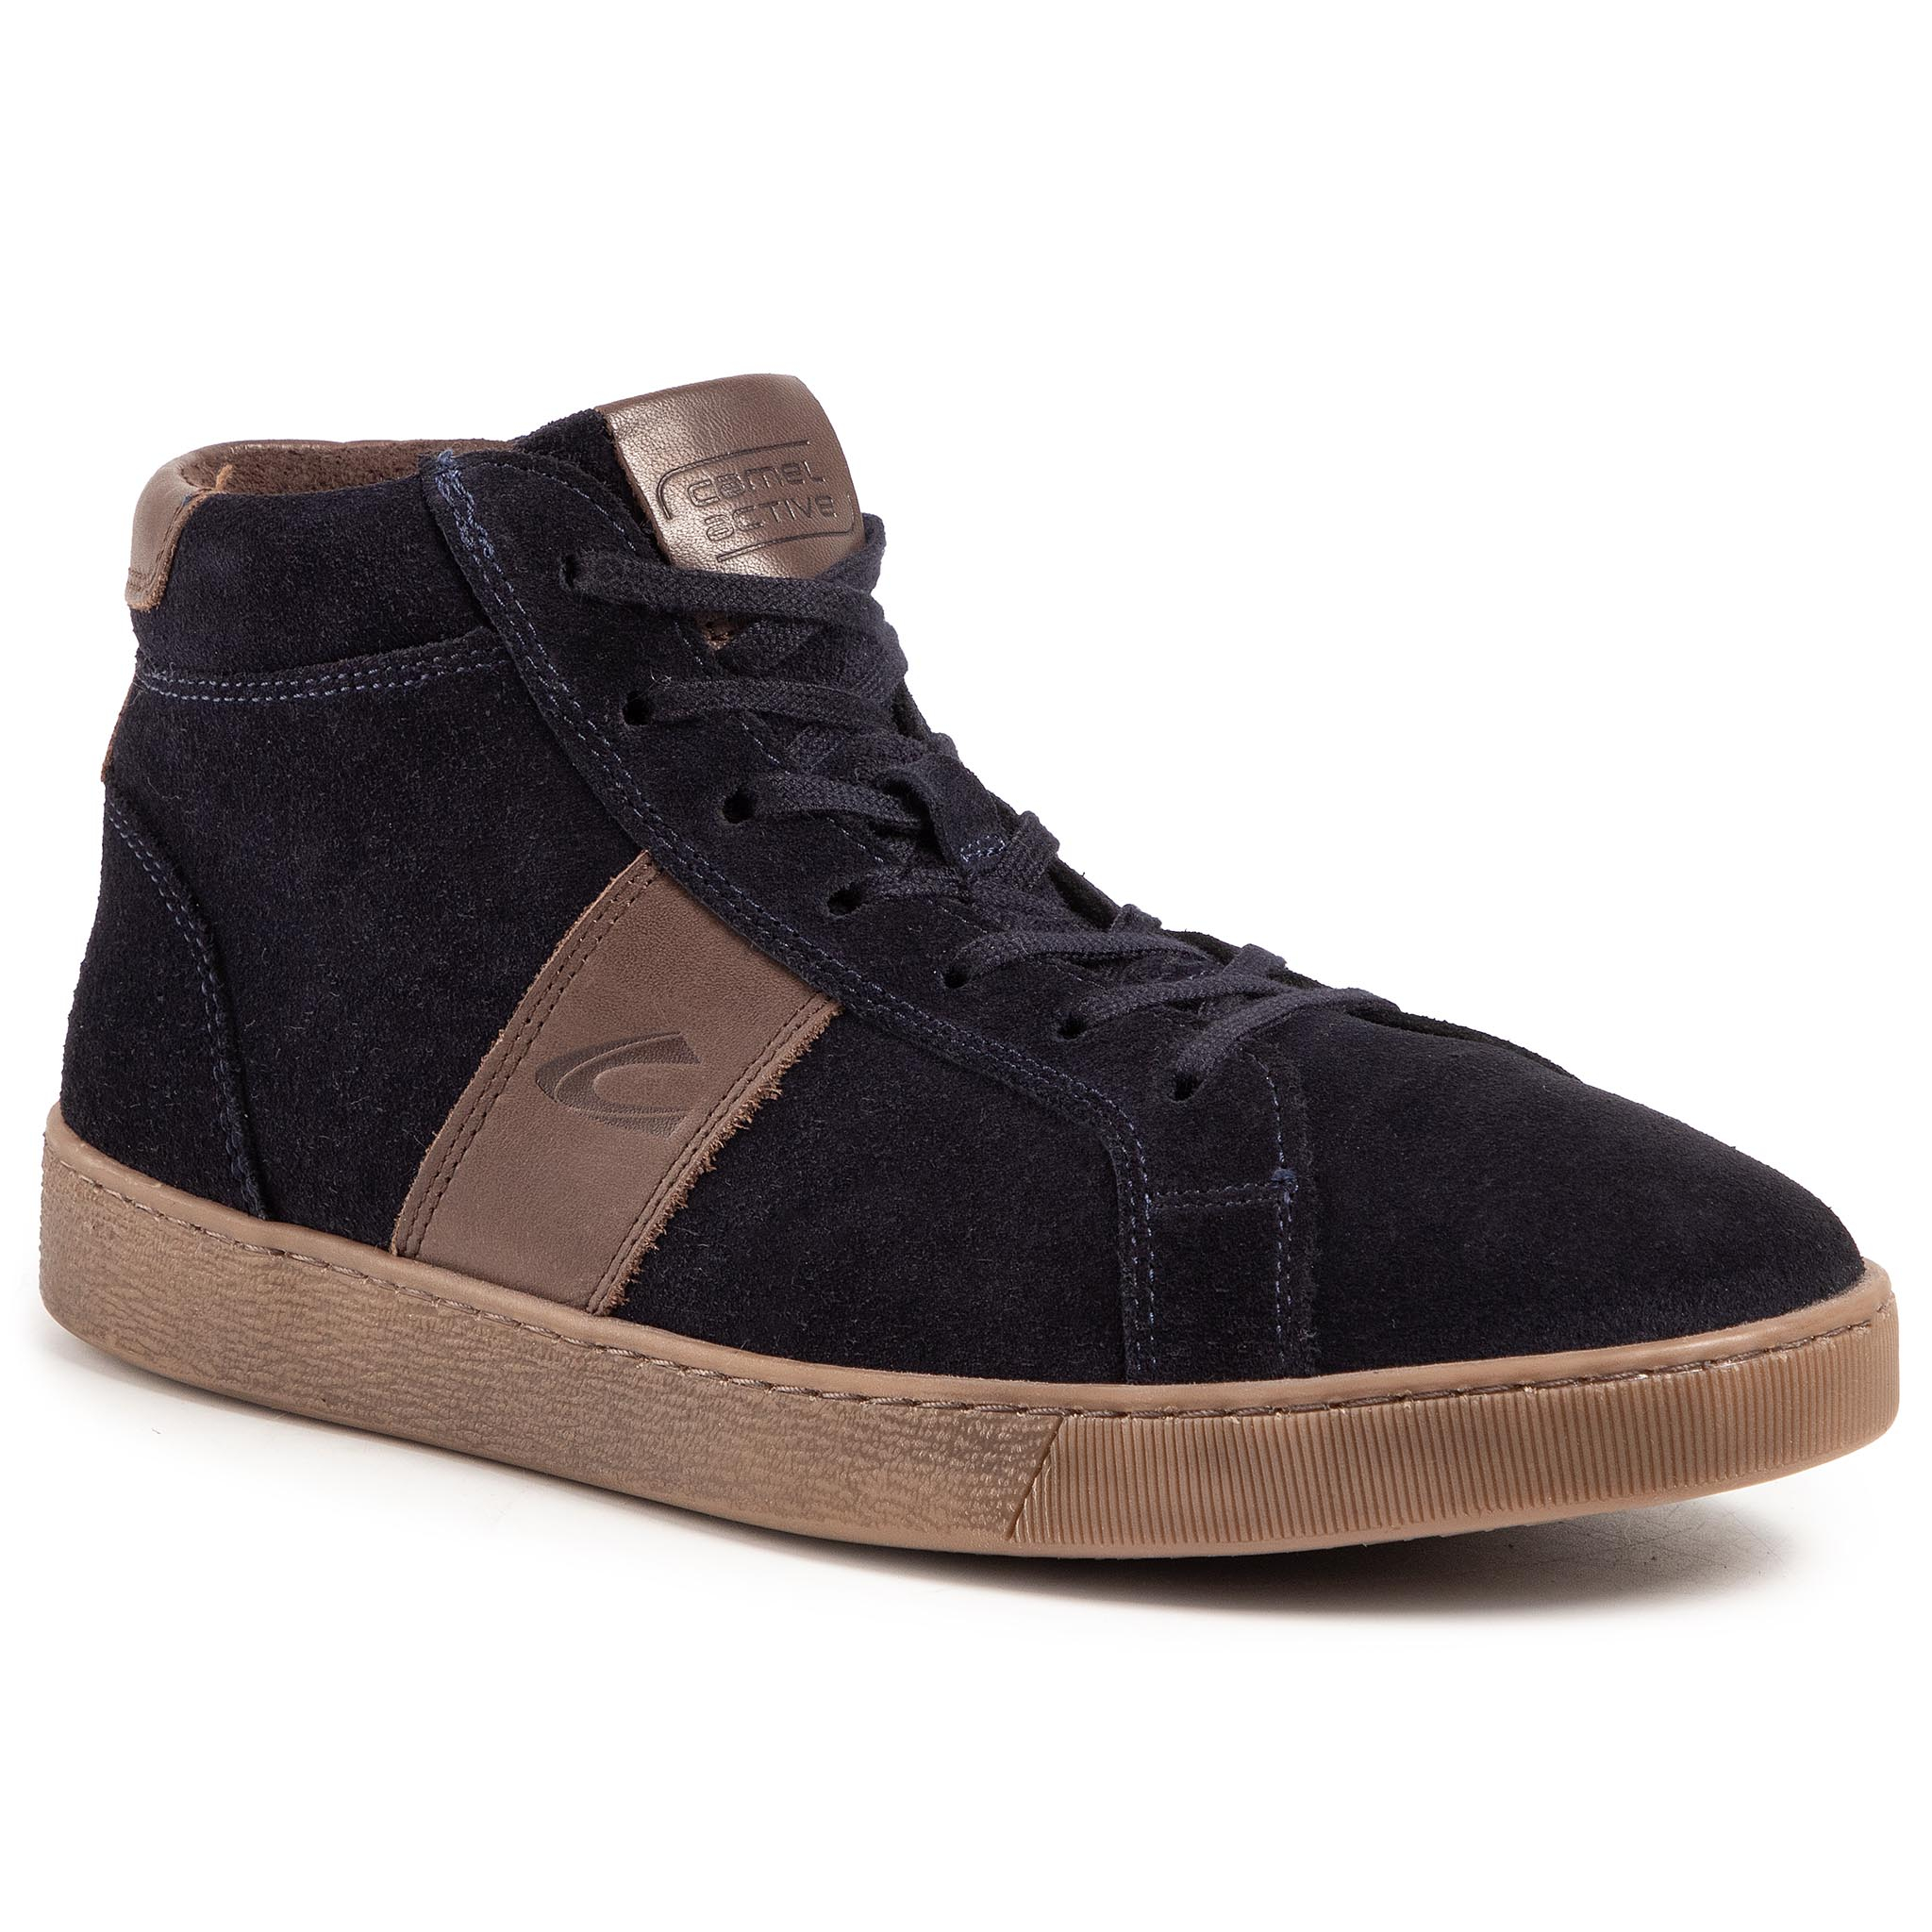 Sneakers CAMEL ACTIVE - Tonic 537.13.01 Midnight/Mocca